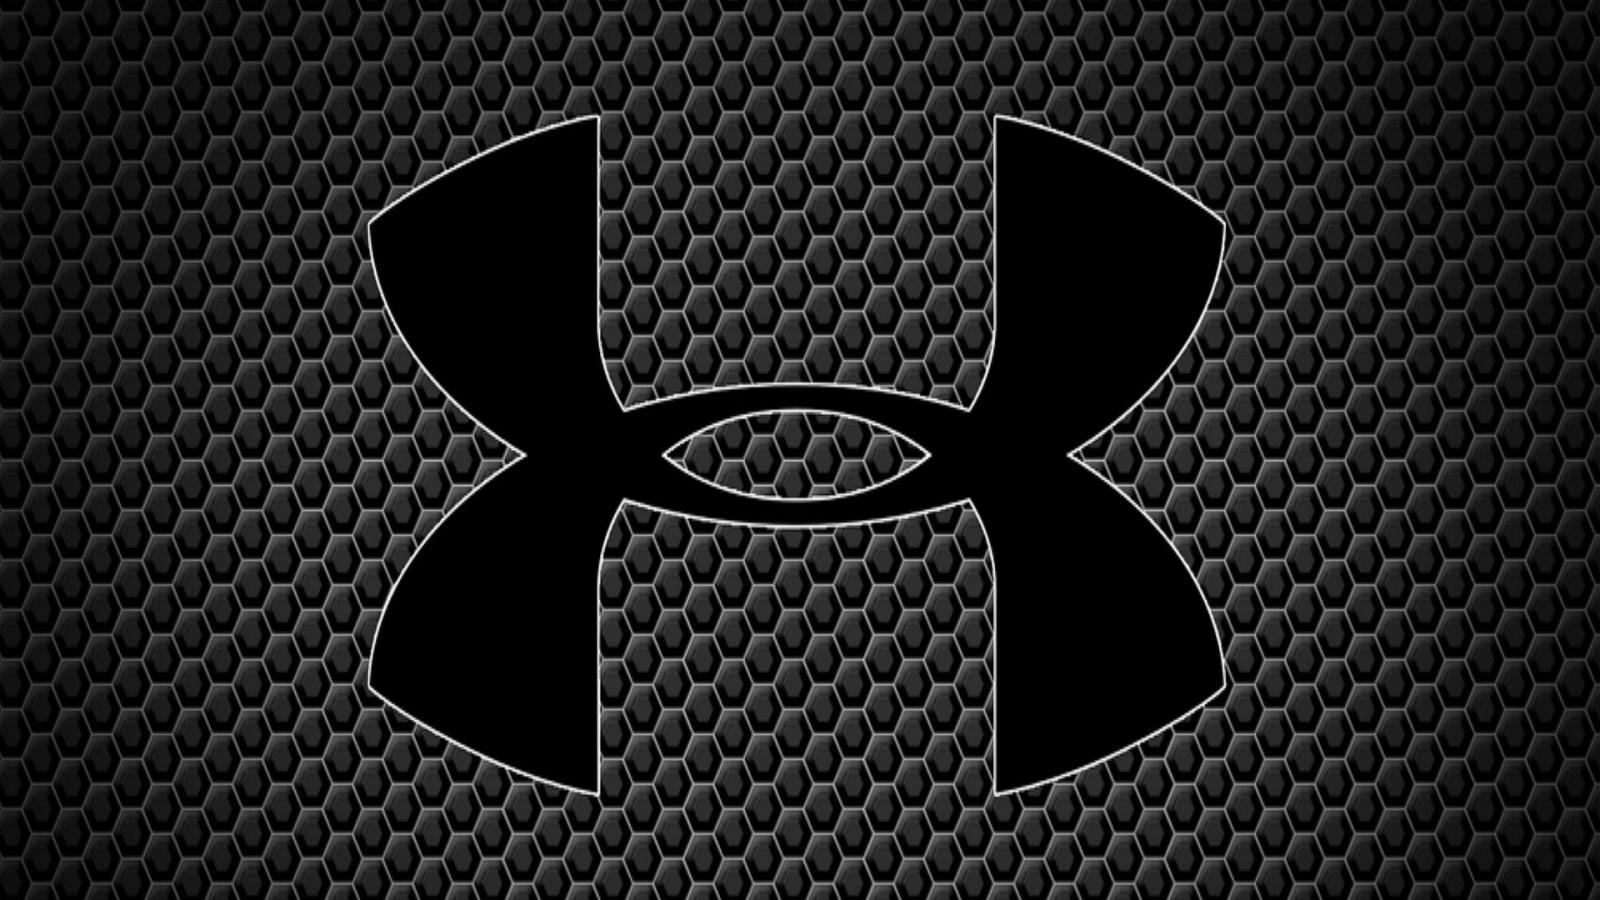 cool under armor wallpaper - photo #22